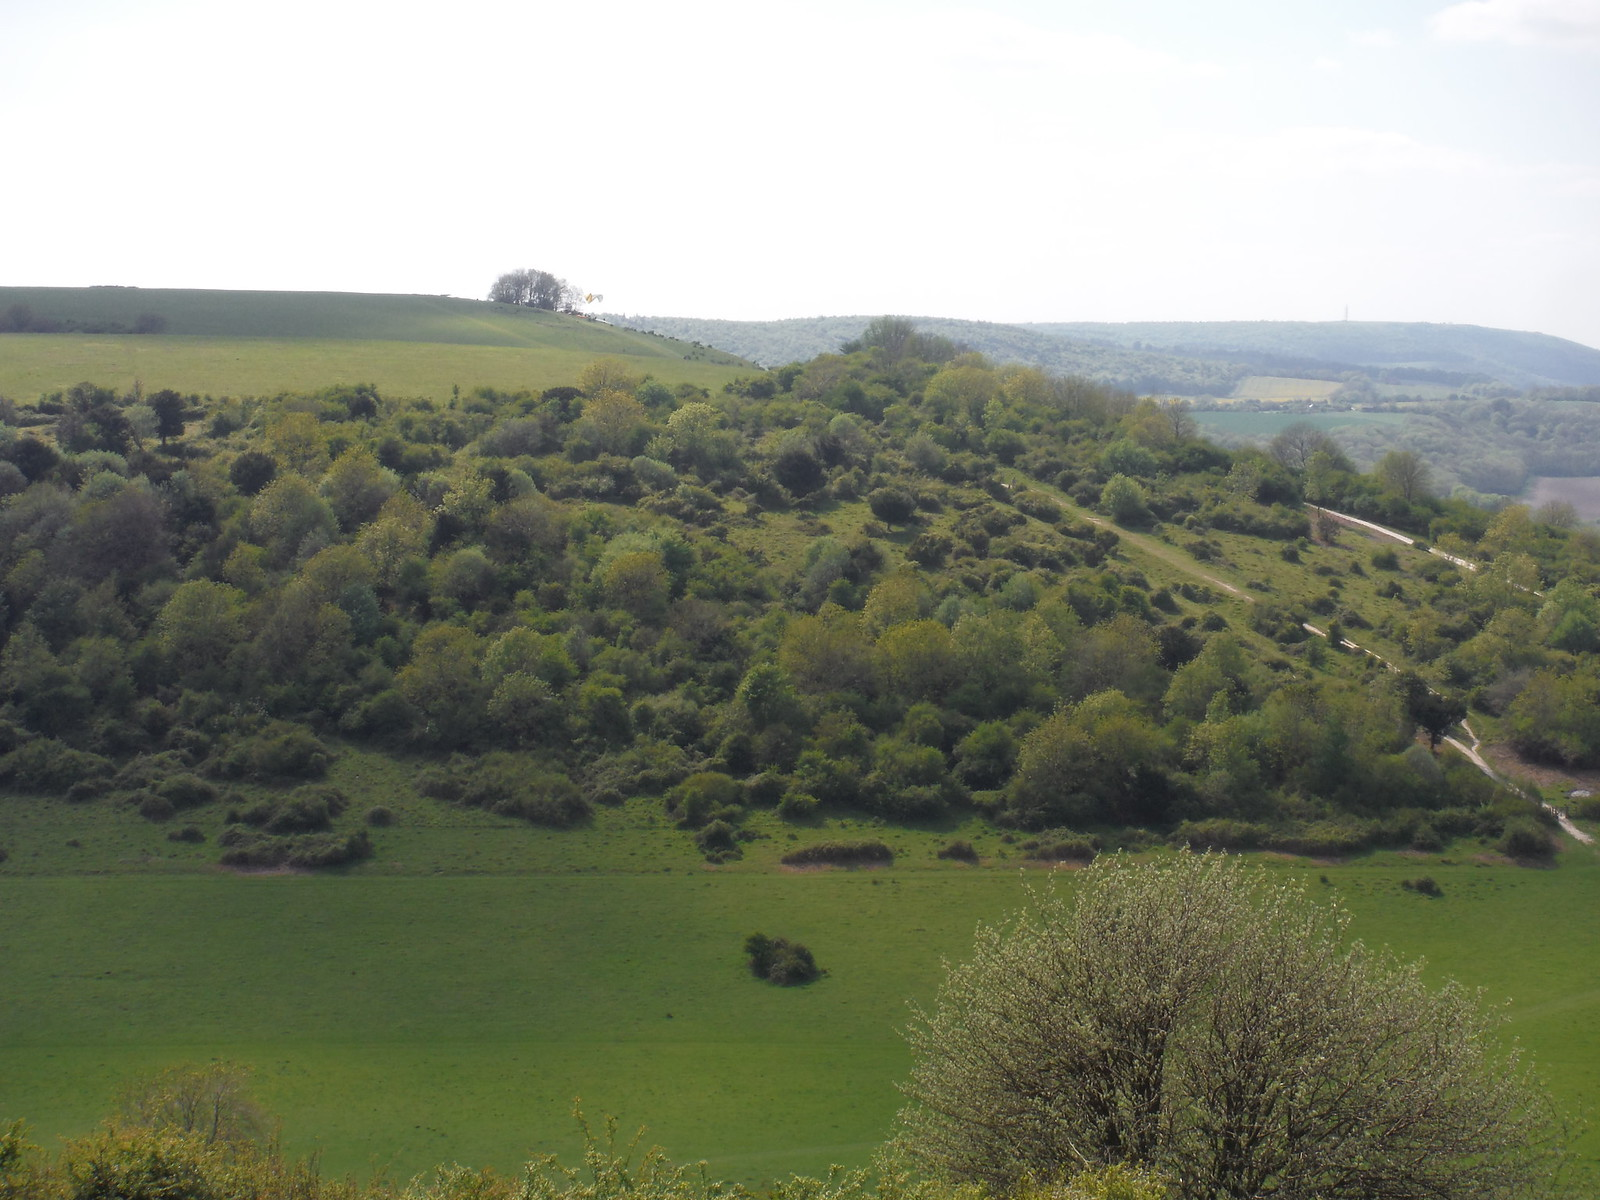 Round Down Hill, Harting Down SWC Walk Rowlands Castle Circular - Extension